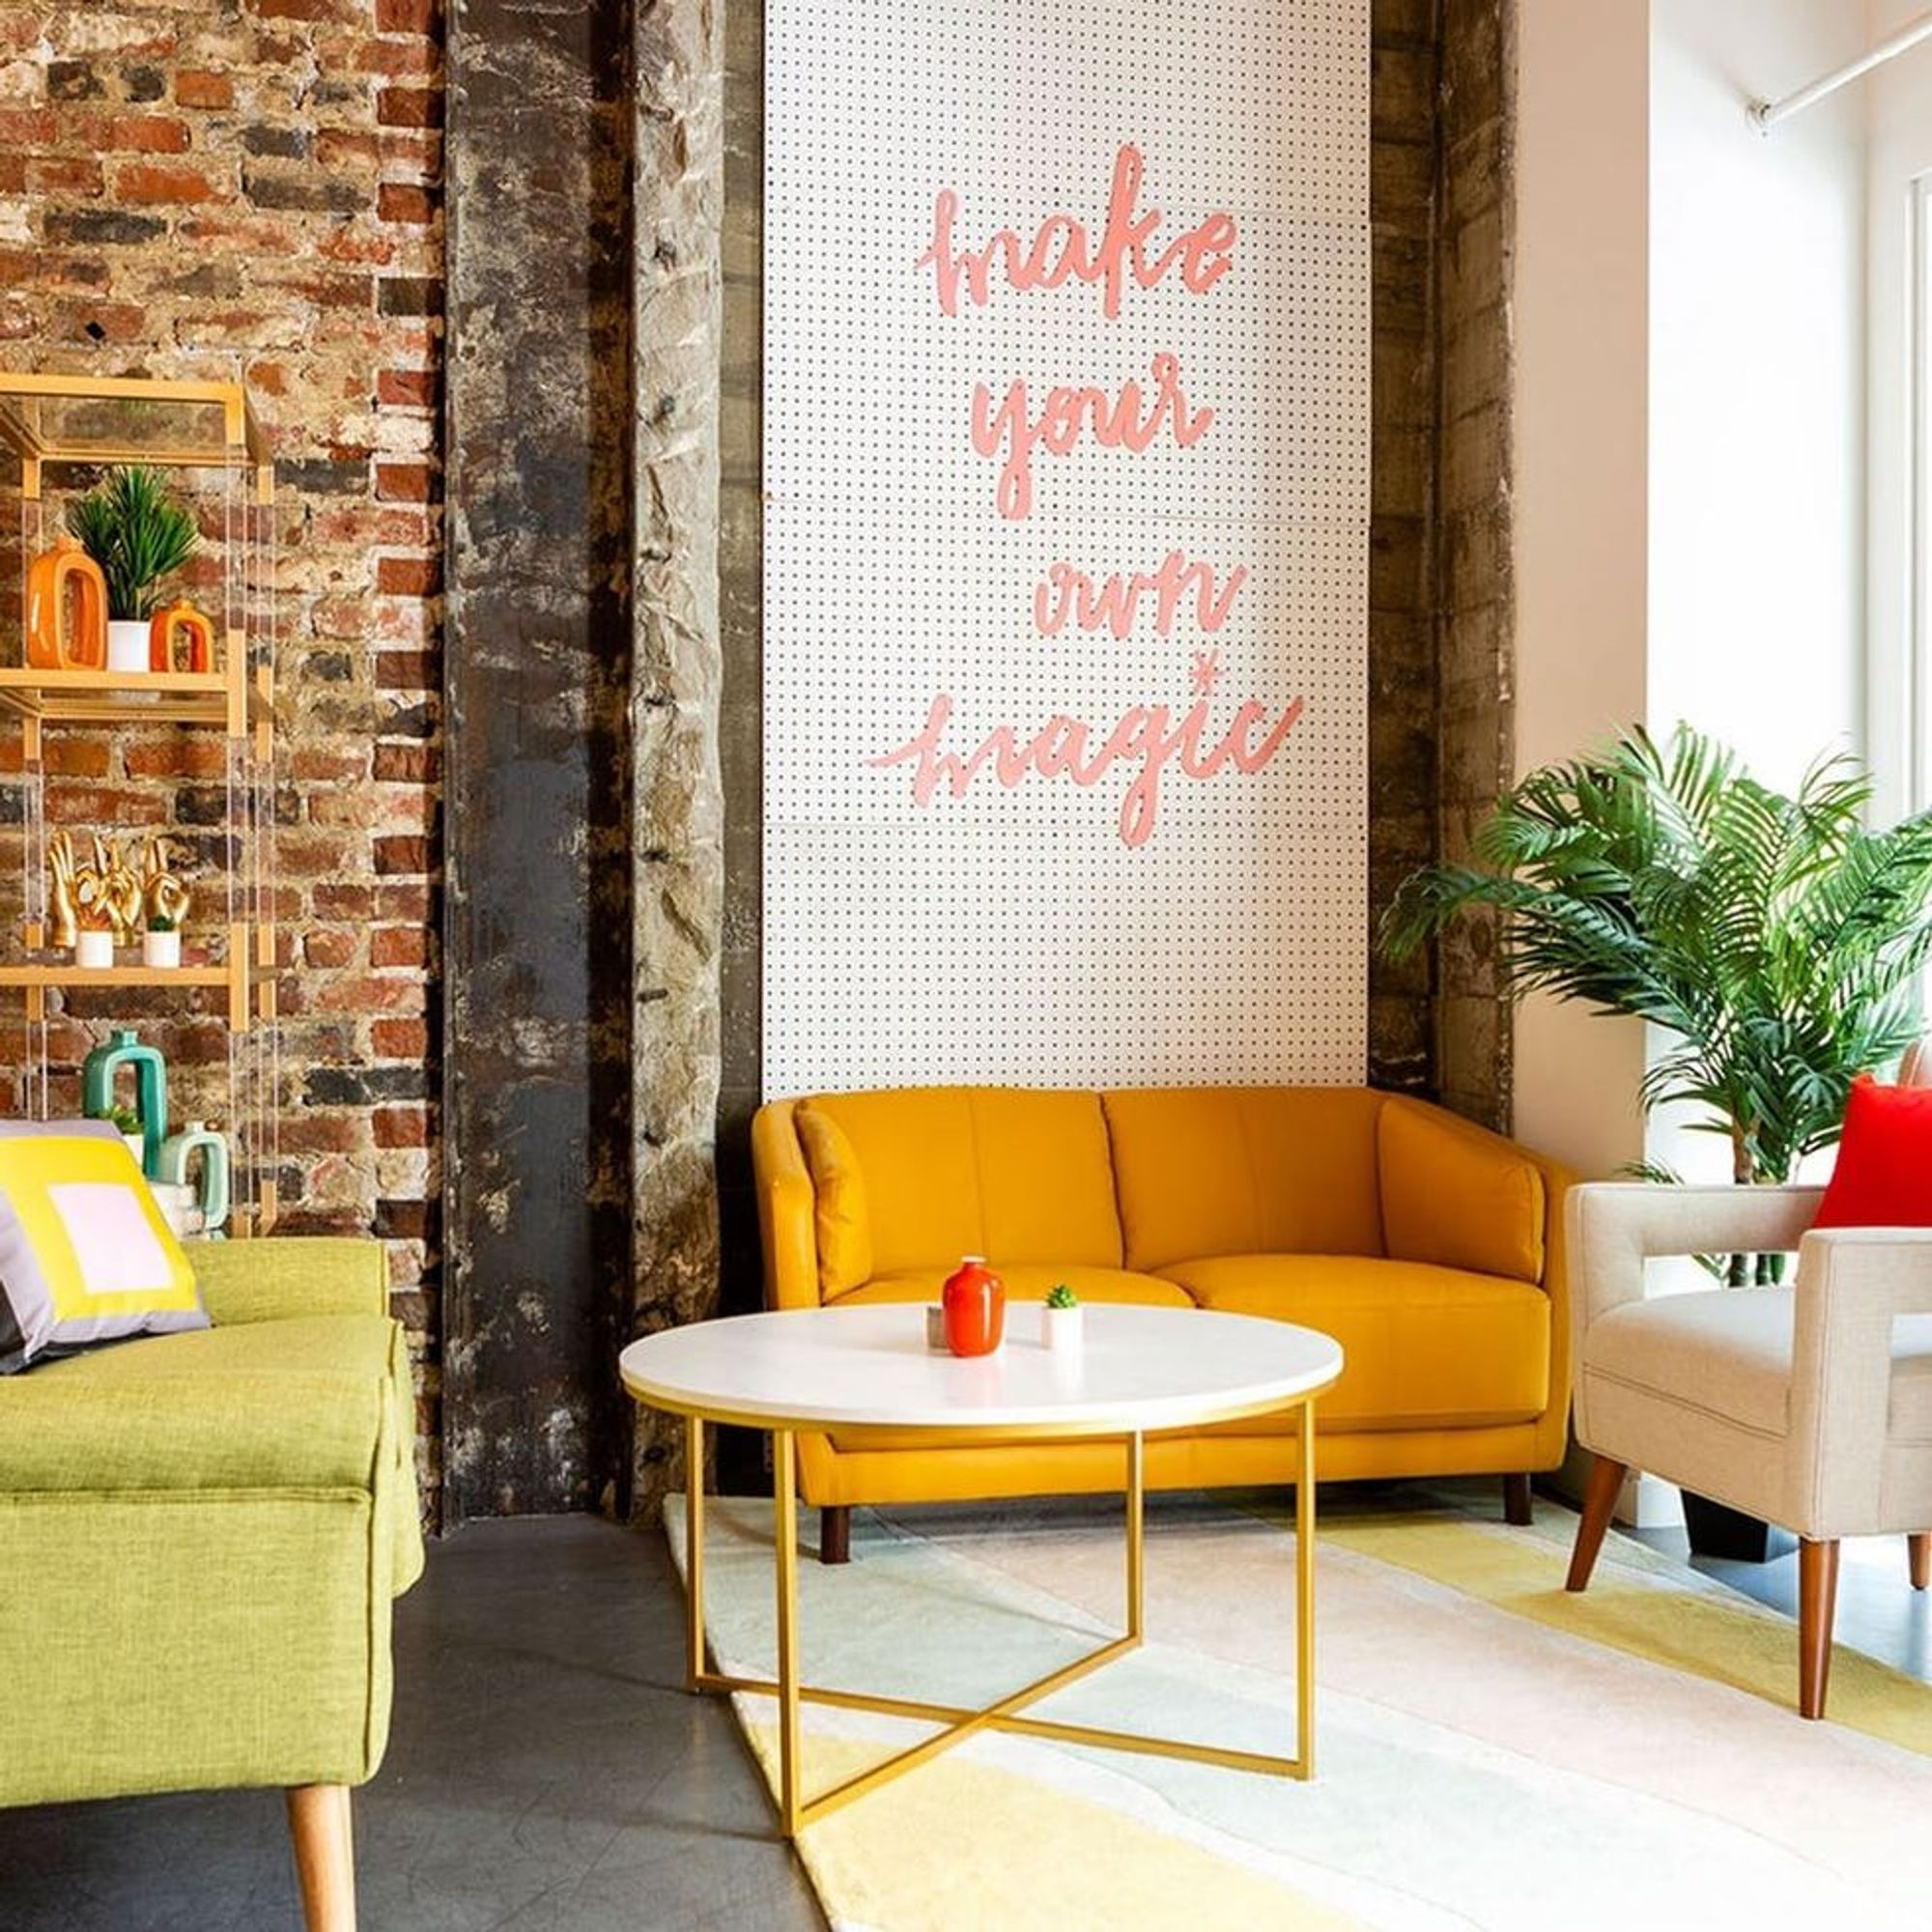 Check Out Our Colorful Mid-Century Modern Office Makeover - Brit + Co